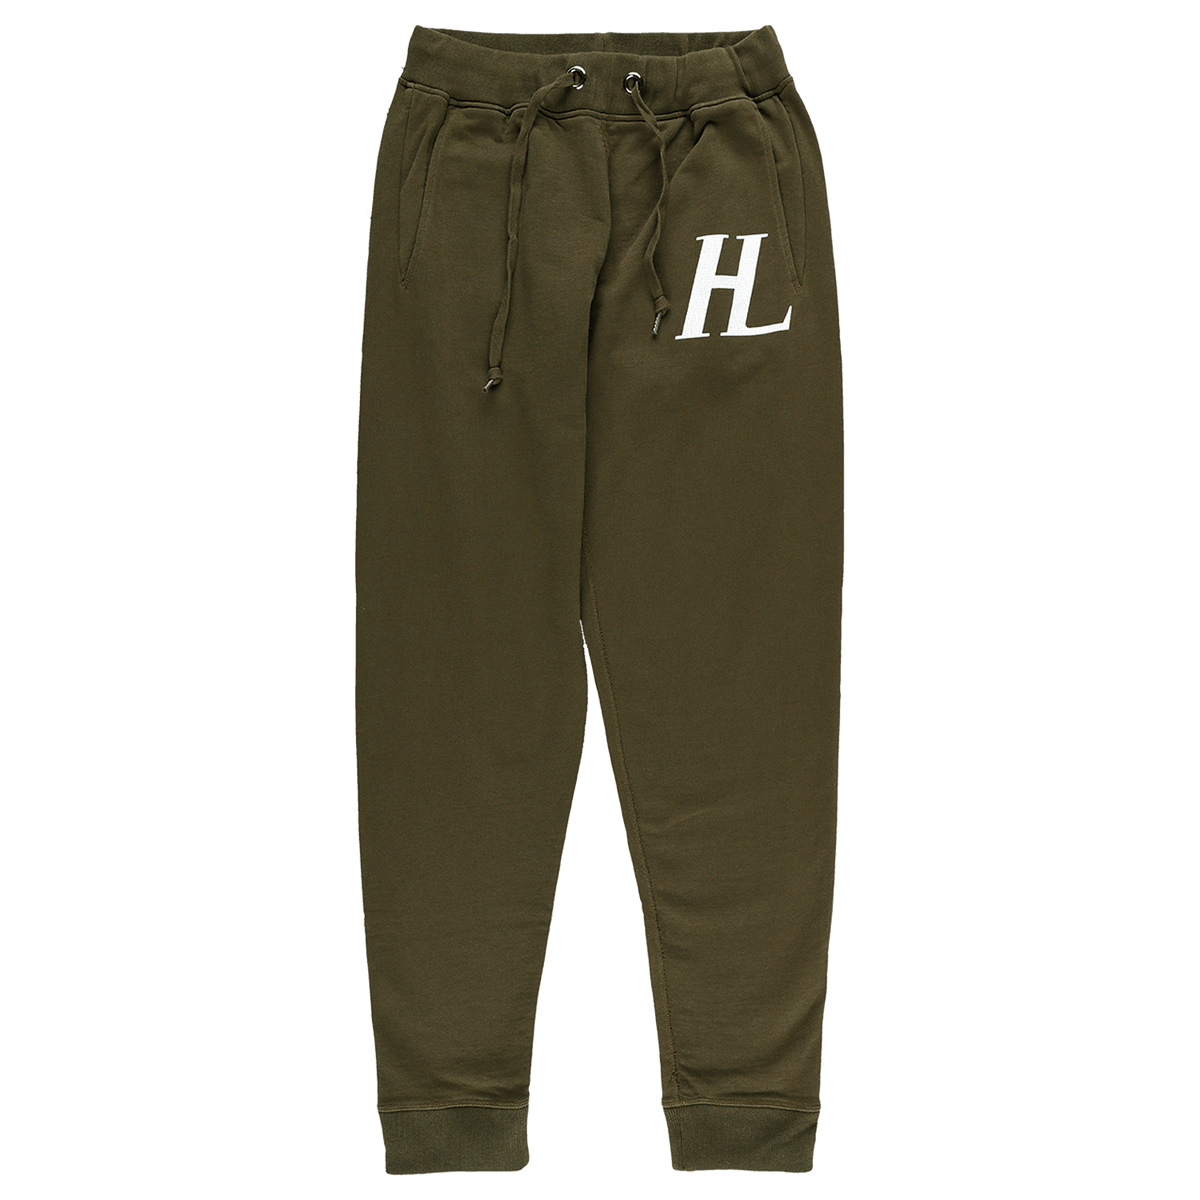 Helmut Lang Women's Monogram Sweatpants  - XHIBITION